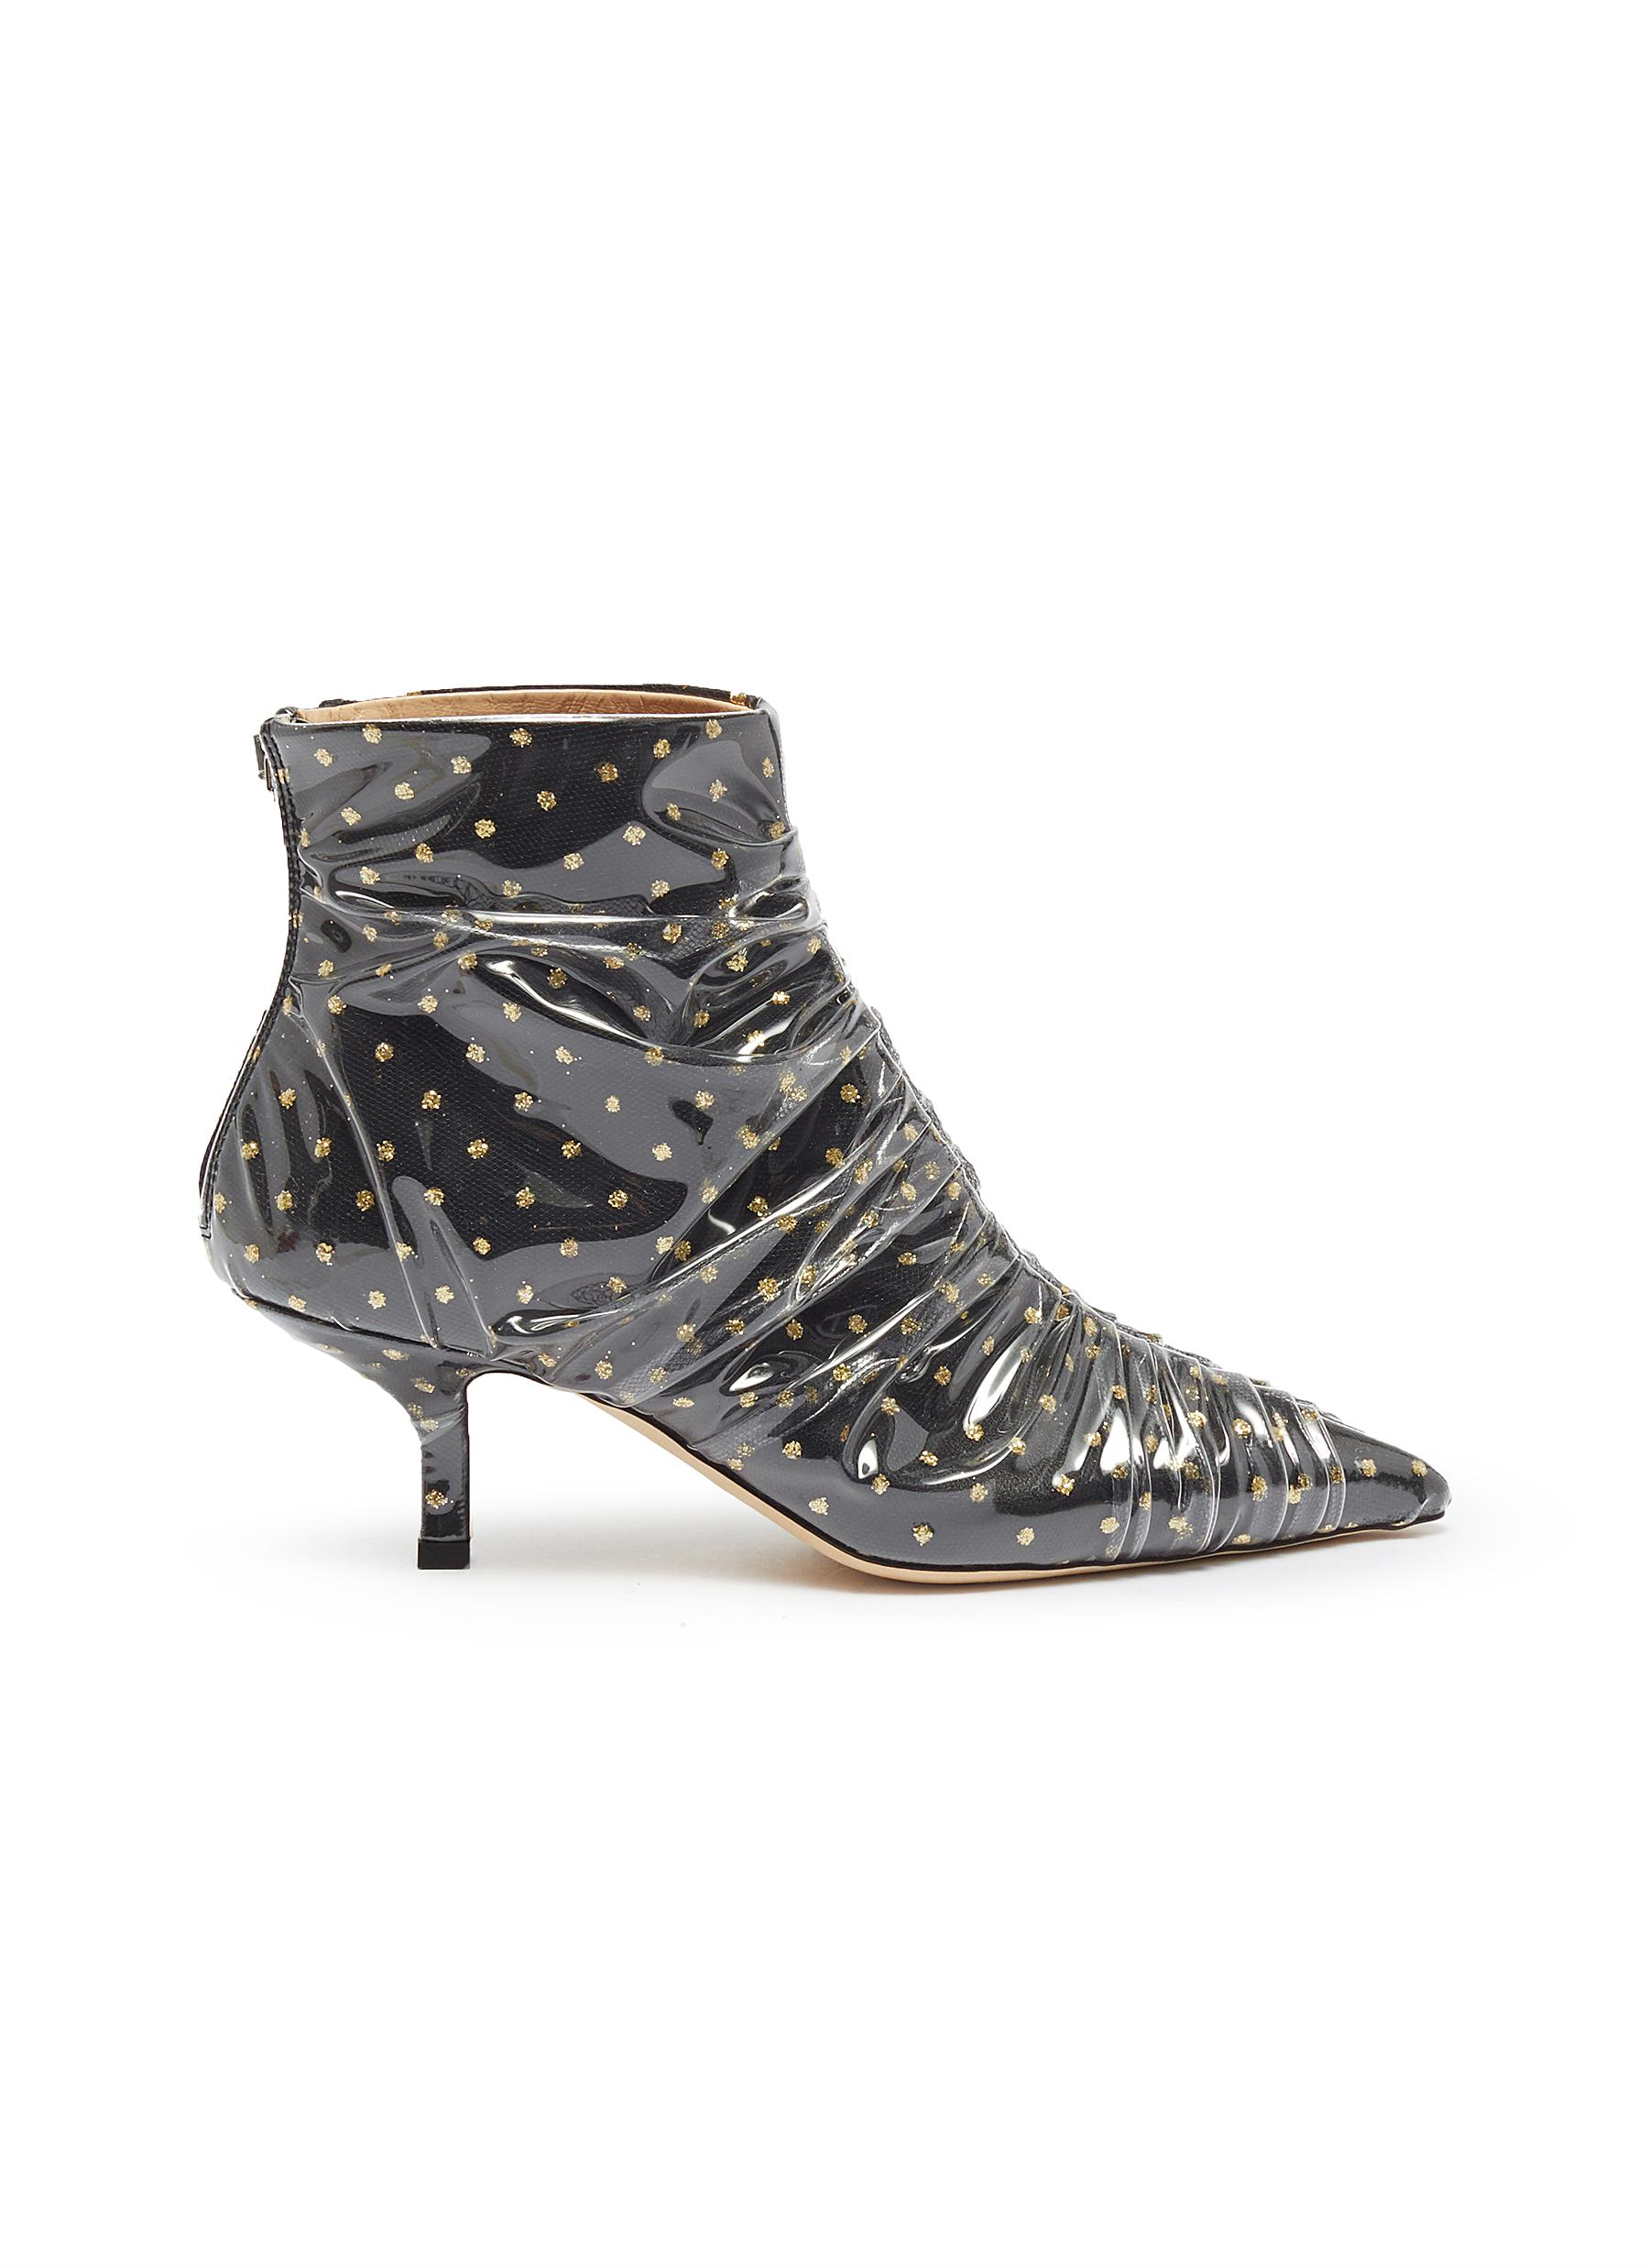 Ruched PVC layer glitter polka dot ankle boots by Midnight 00